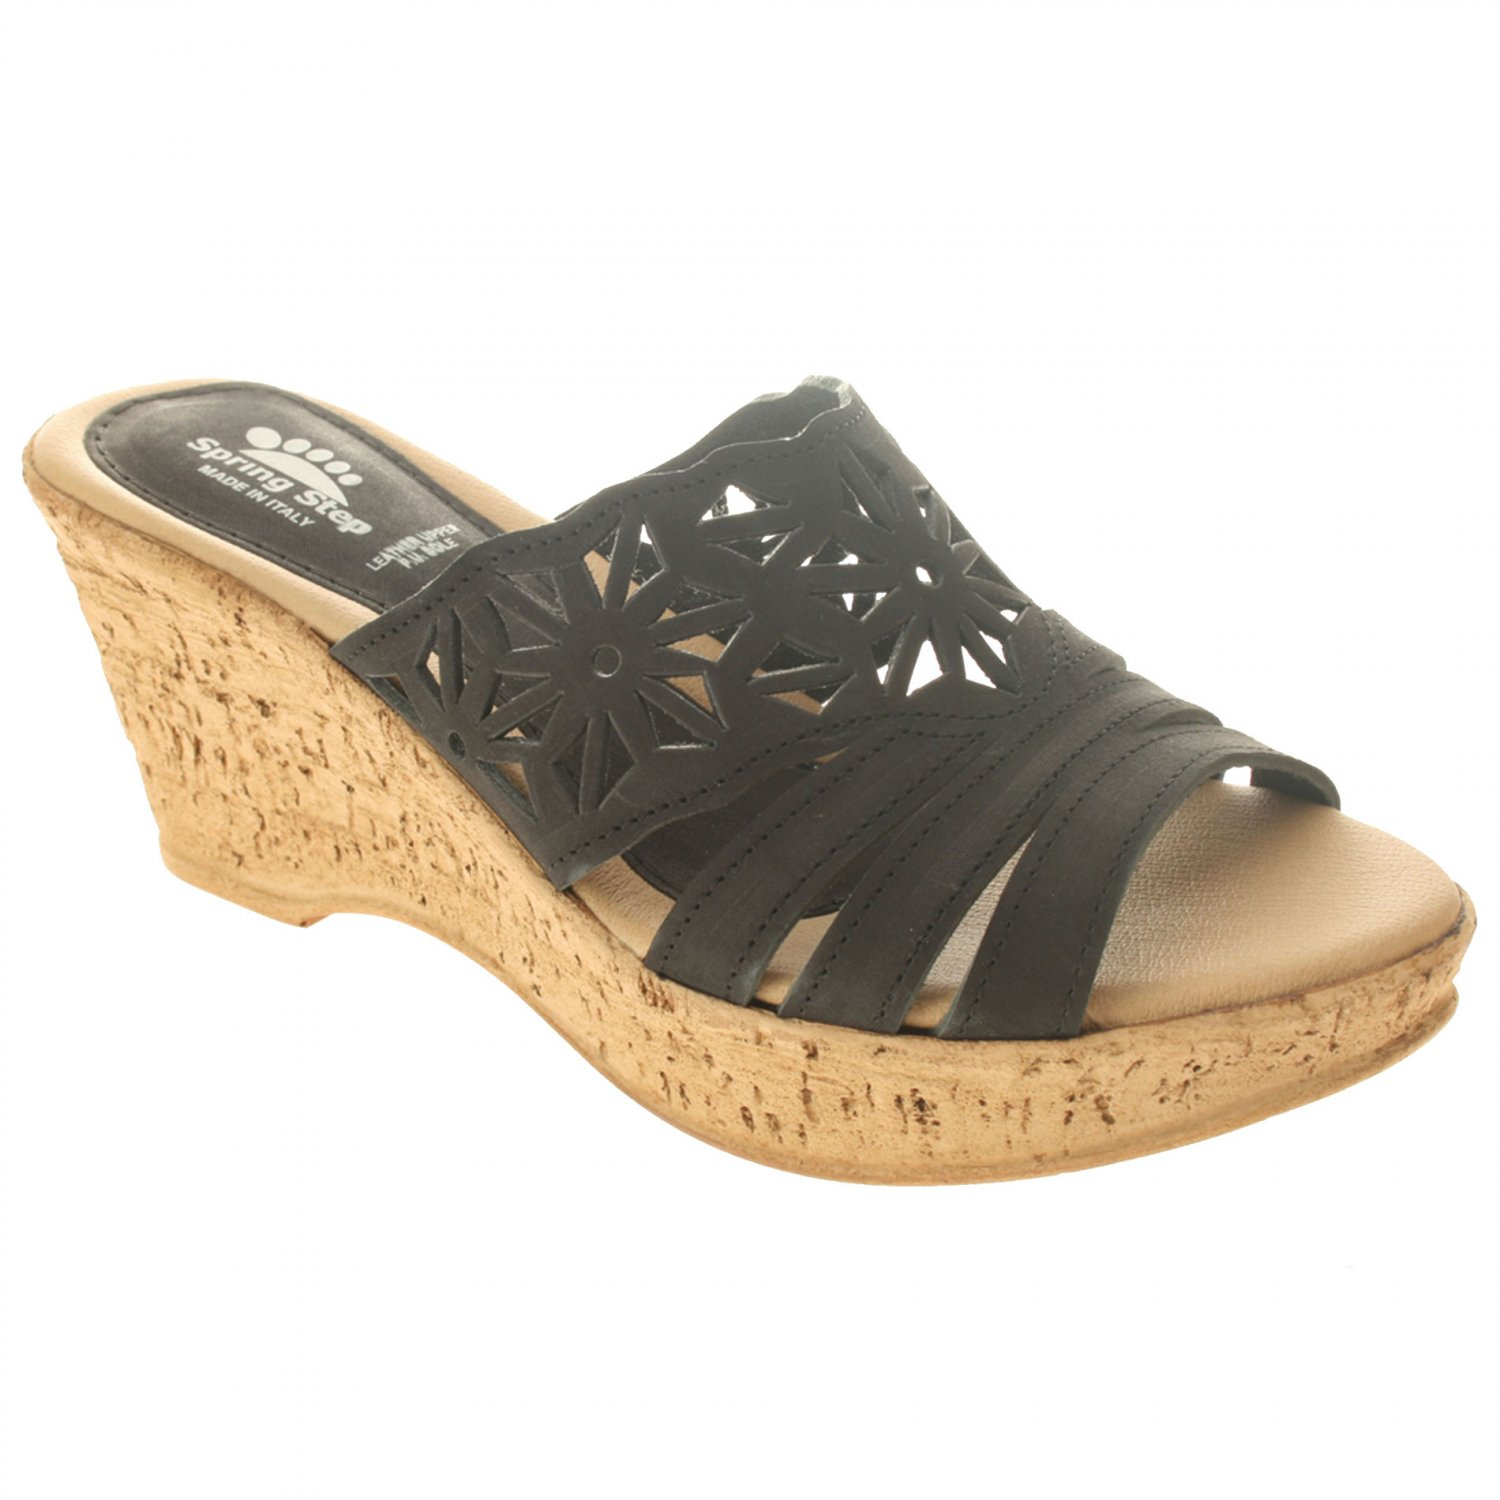 Spring Step DORA Sandals Shoes All Sizes & Colors $69.